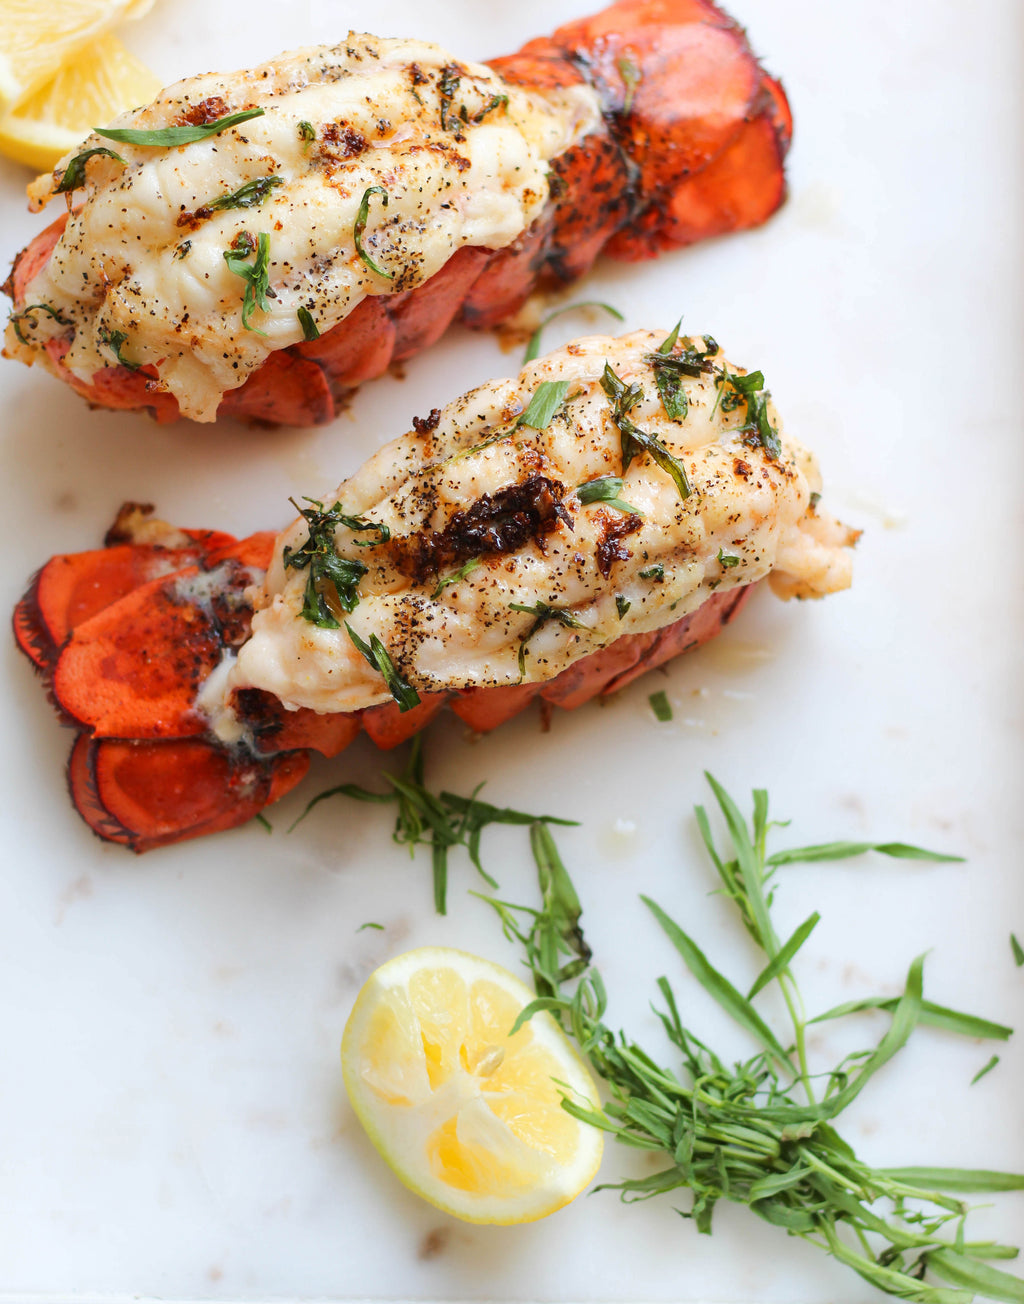 Grilled Lobster Tails with Melted Butter & Tarragon